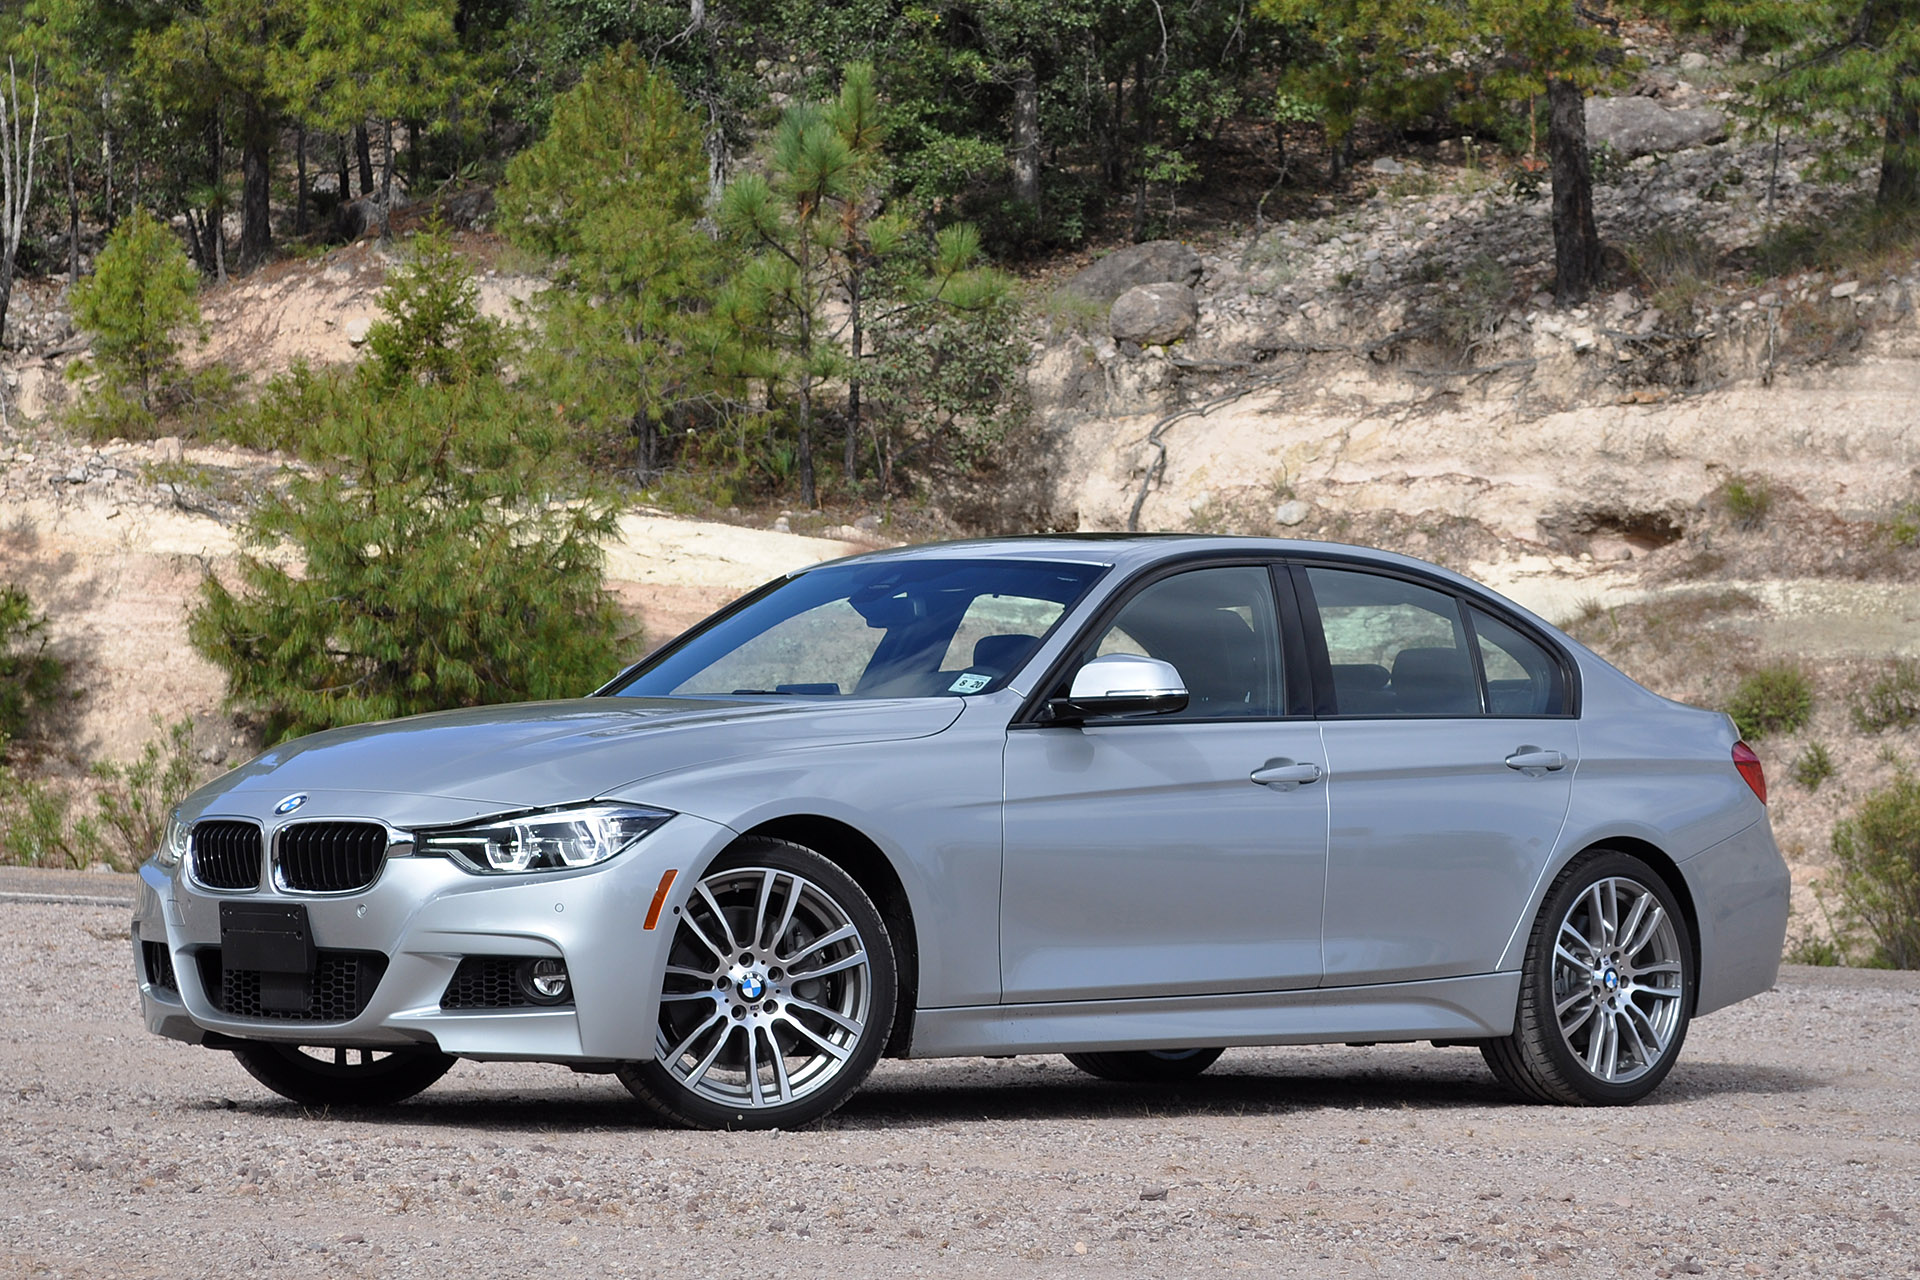 Bmw Certified Pre Owned >> BMW 3 Series Prices, Reviews and New Model Information - Autoblog